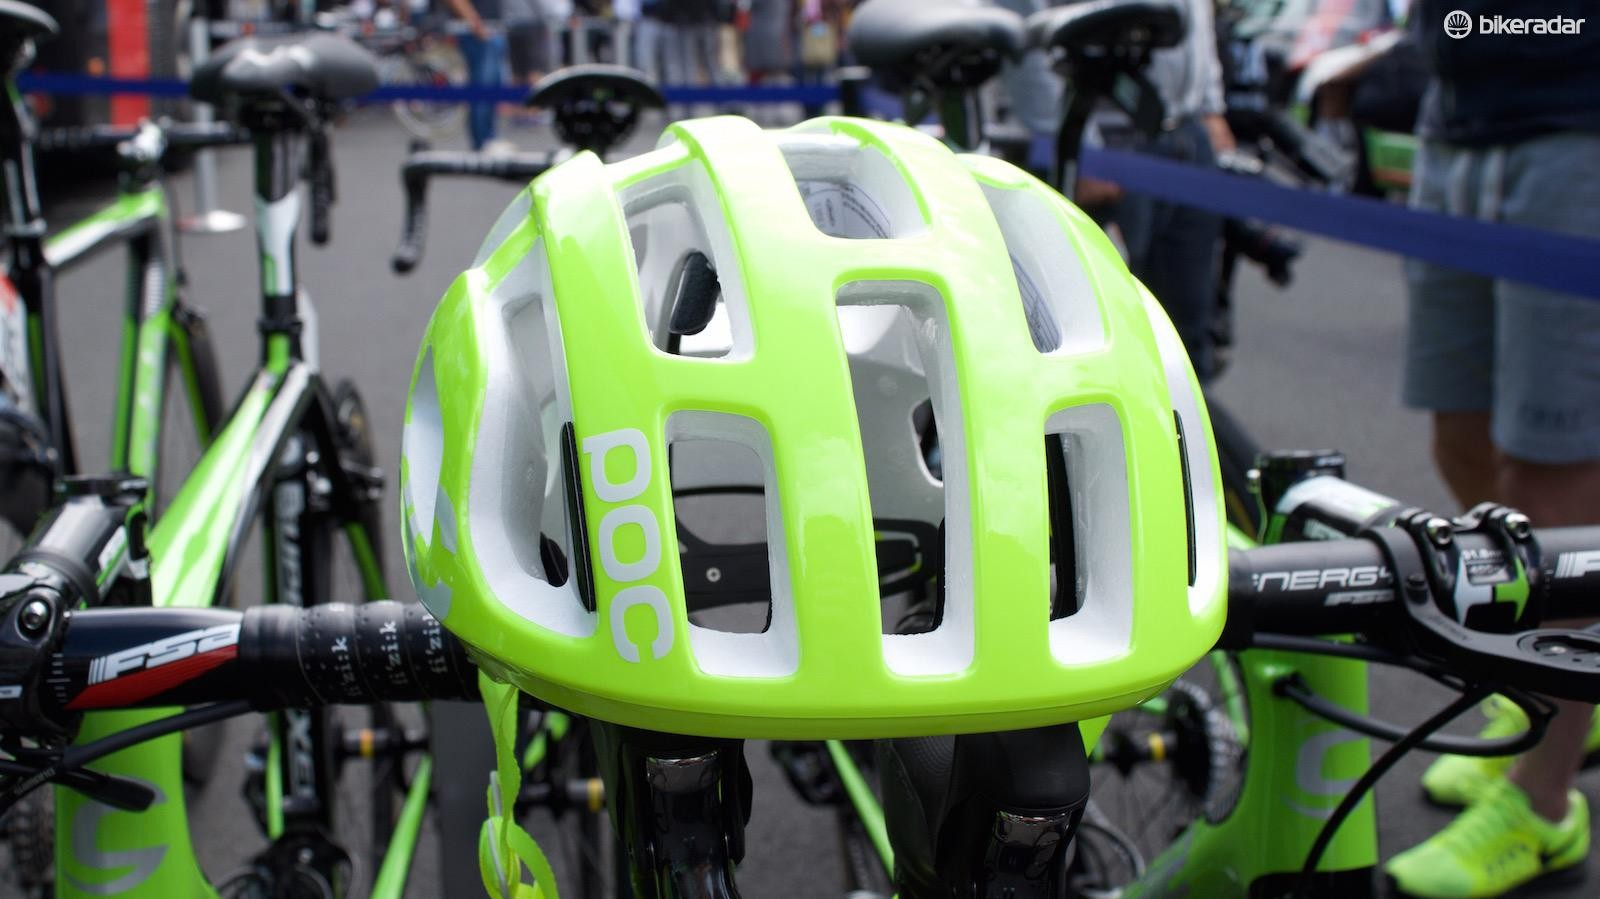 Cannondale-Drapac riders will be easy to spot in the peloton